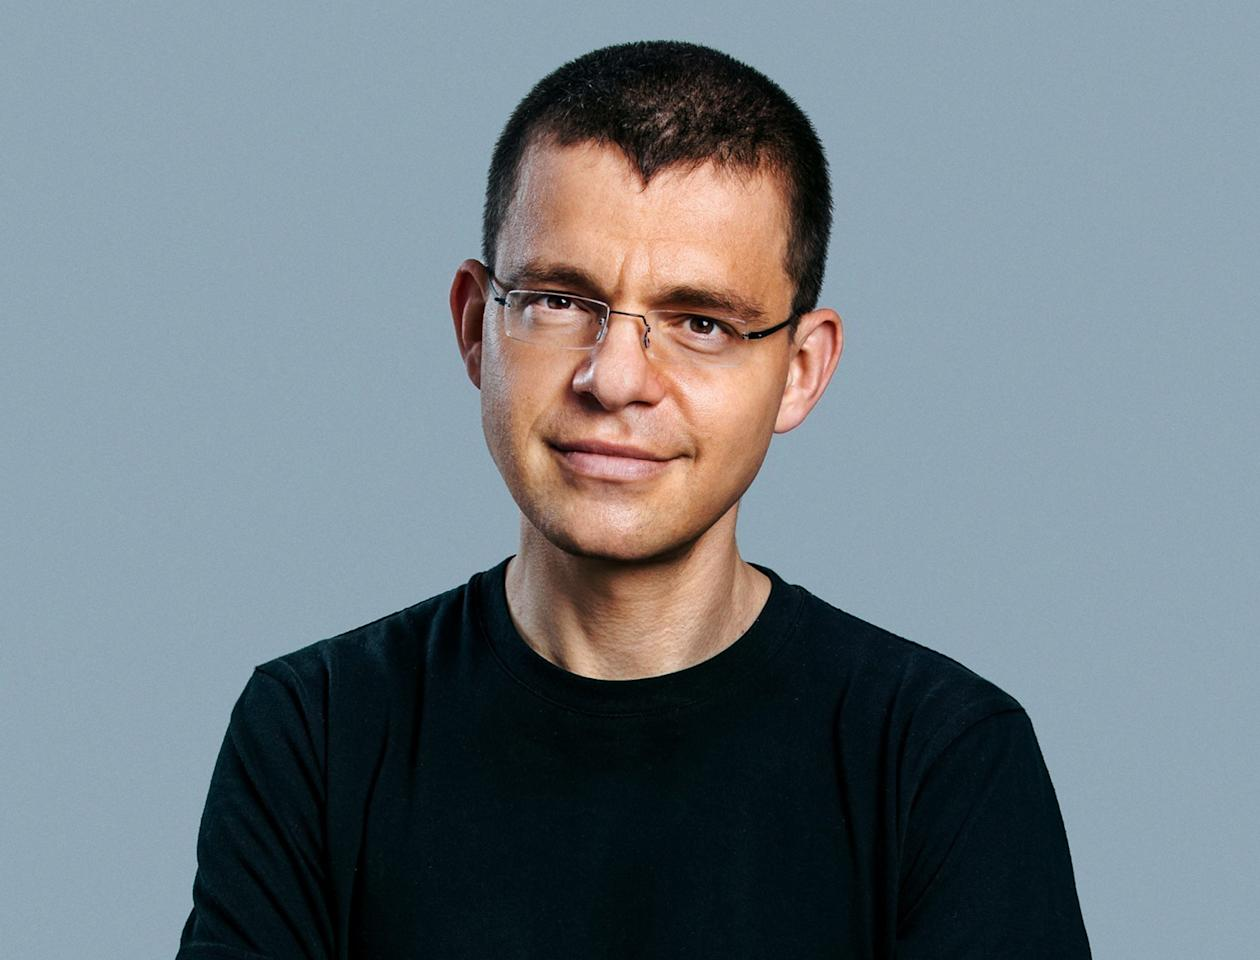 "<p> This photo provided by Affirm shows PayPal co-founder Max Levchin. Levchin thinks the pace of innovation is progressing well, considering the banking industry is the most regulated this side of health care. But he considers the speculation around bitcoin to be ""the elephant in the room."" He also thinks massive computer hacking attacks are threatening to reduce society's trust in technology. (Affirm via AP) </p>"